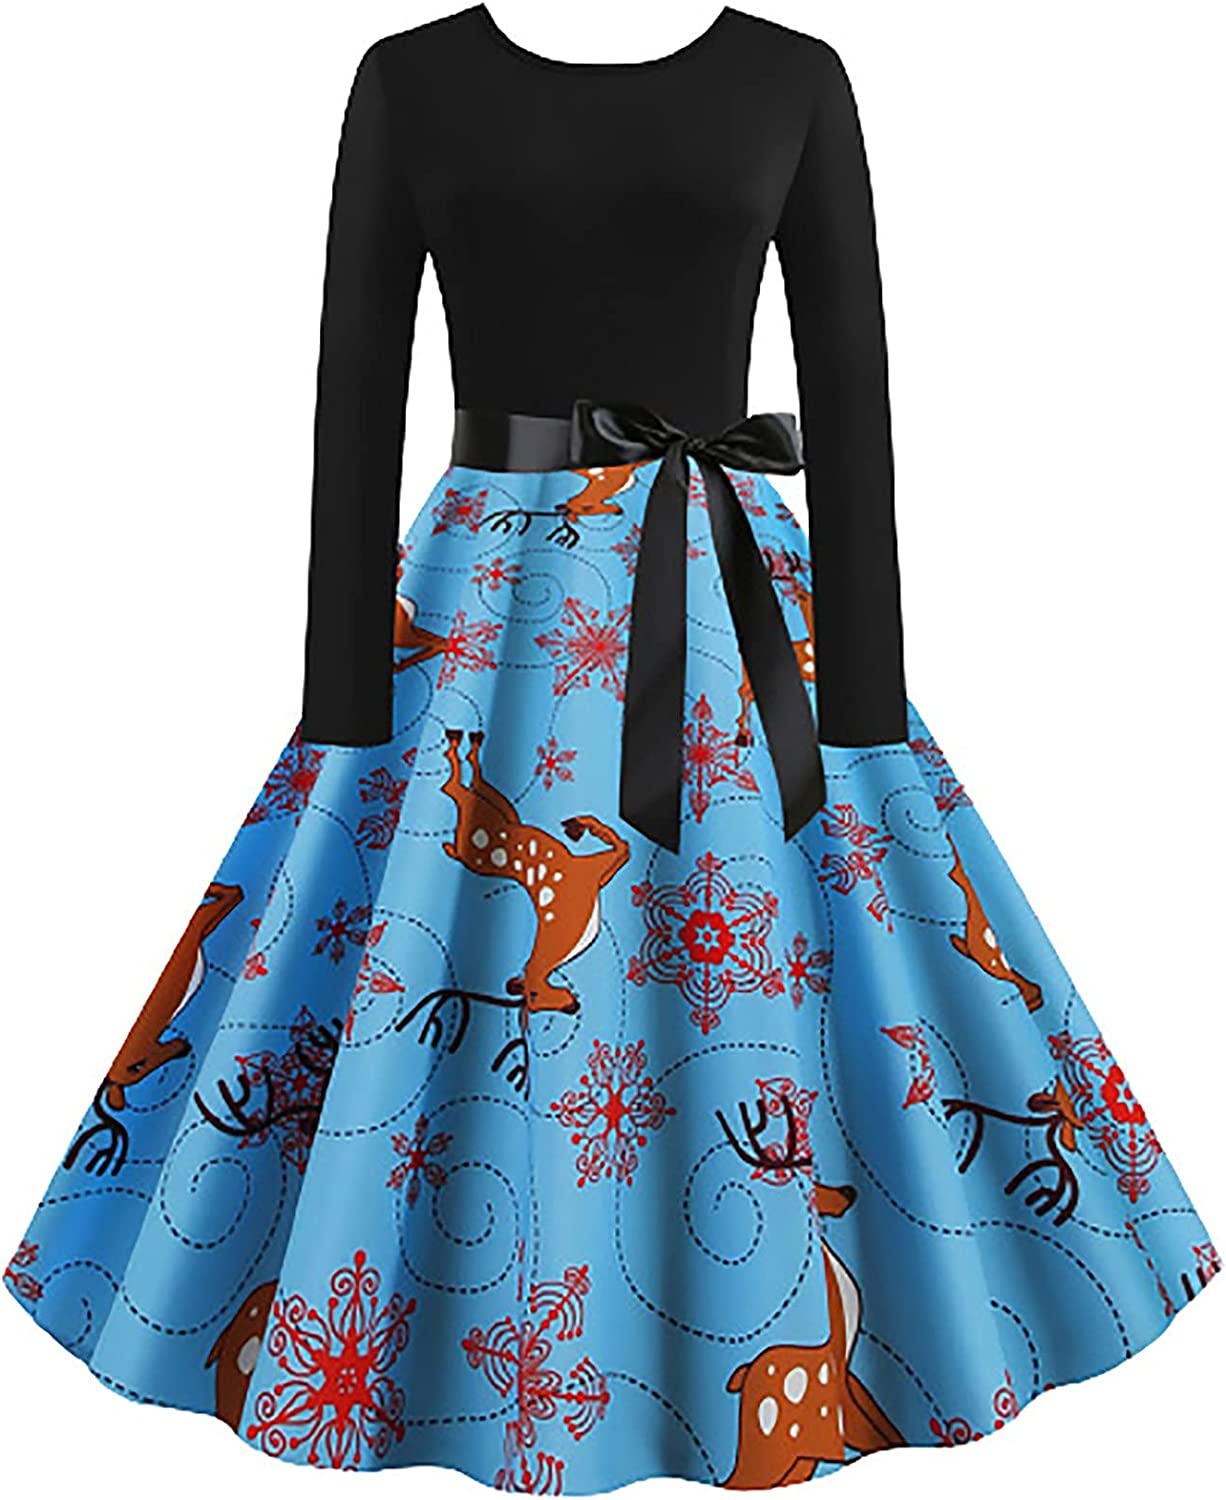 Christmas Evening Party Swing Dress Indefinitely New color Women Casual Fashion for Lon